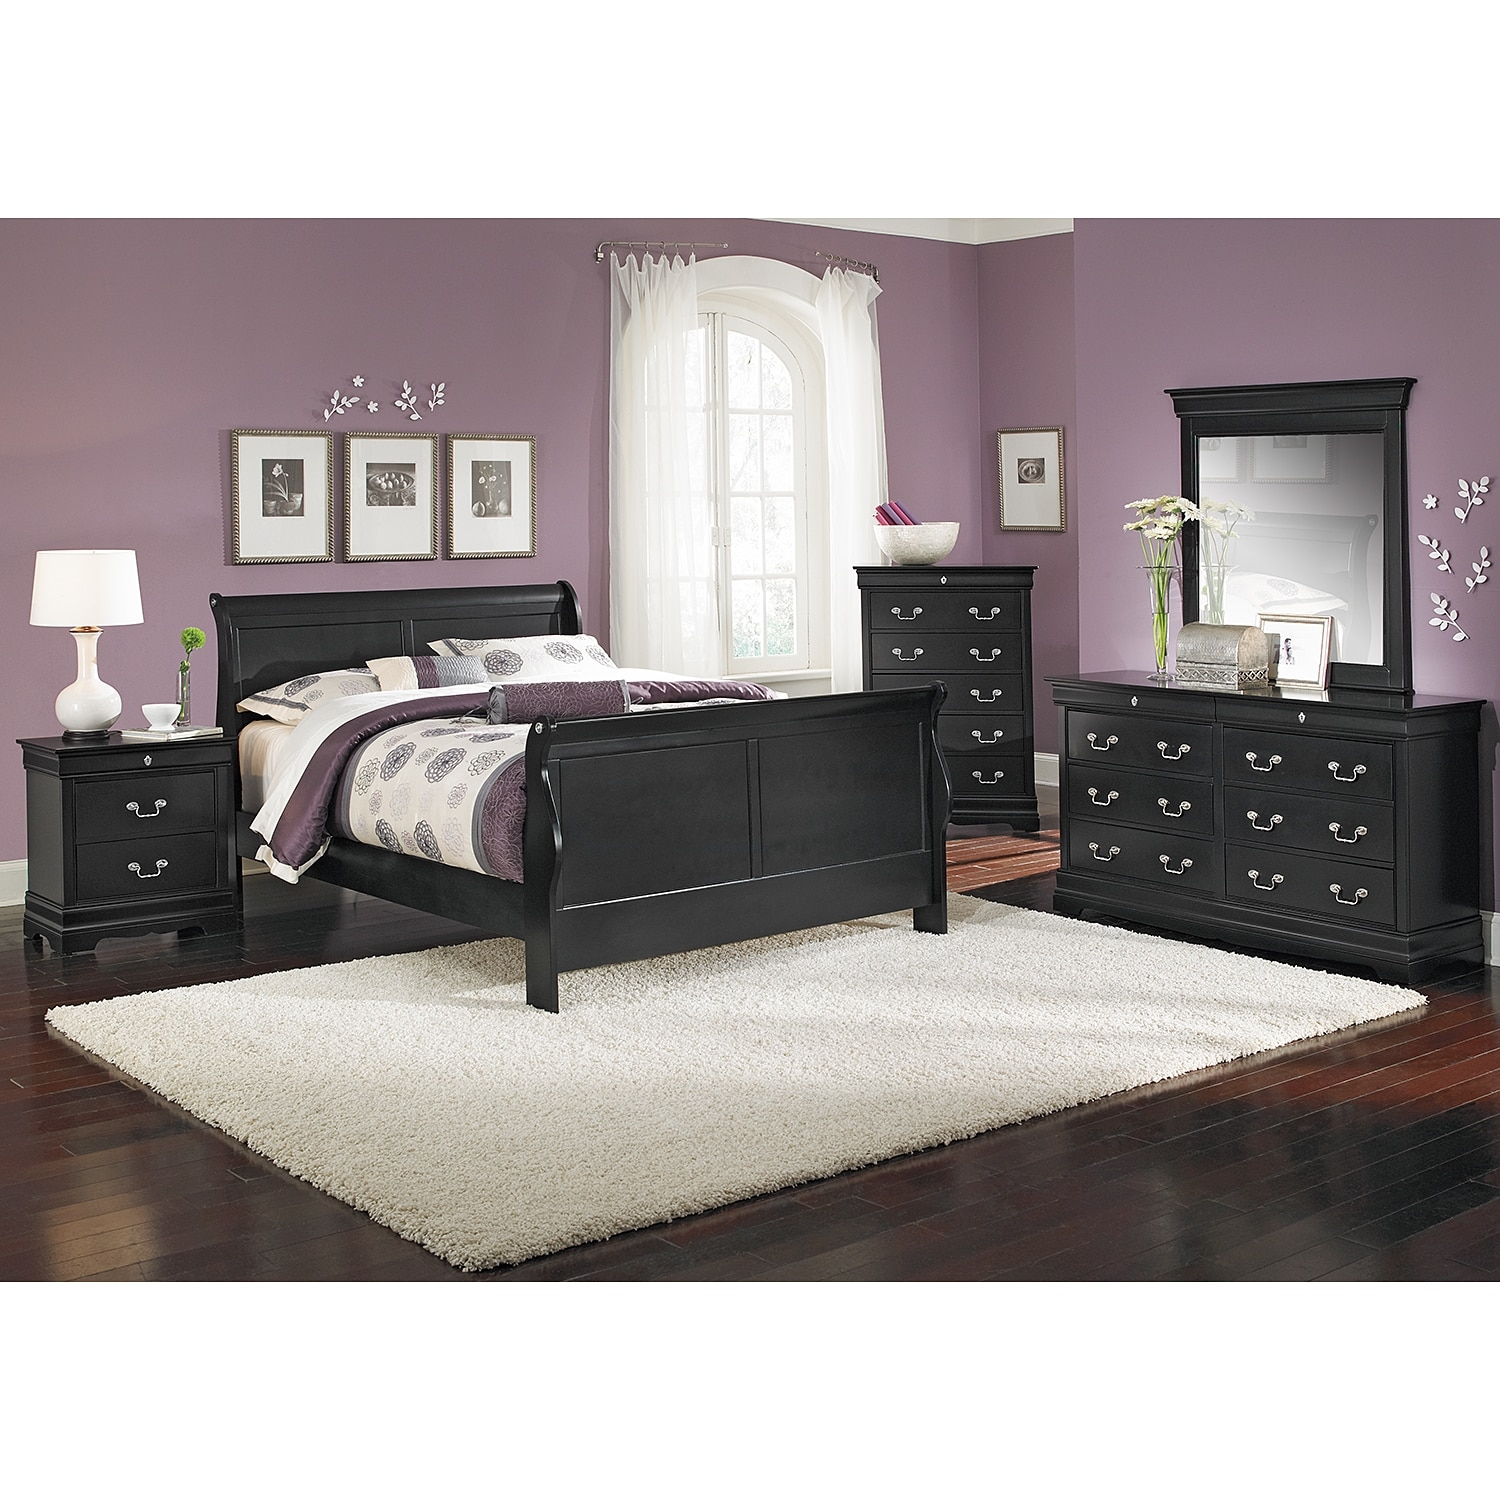 Neo classic 7 piece king bedroom set black american for American furniture bedroom furniture